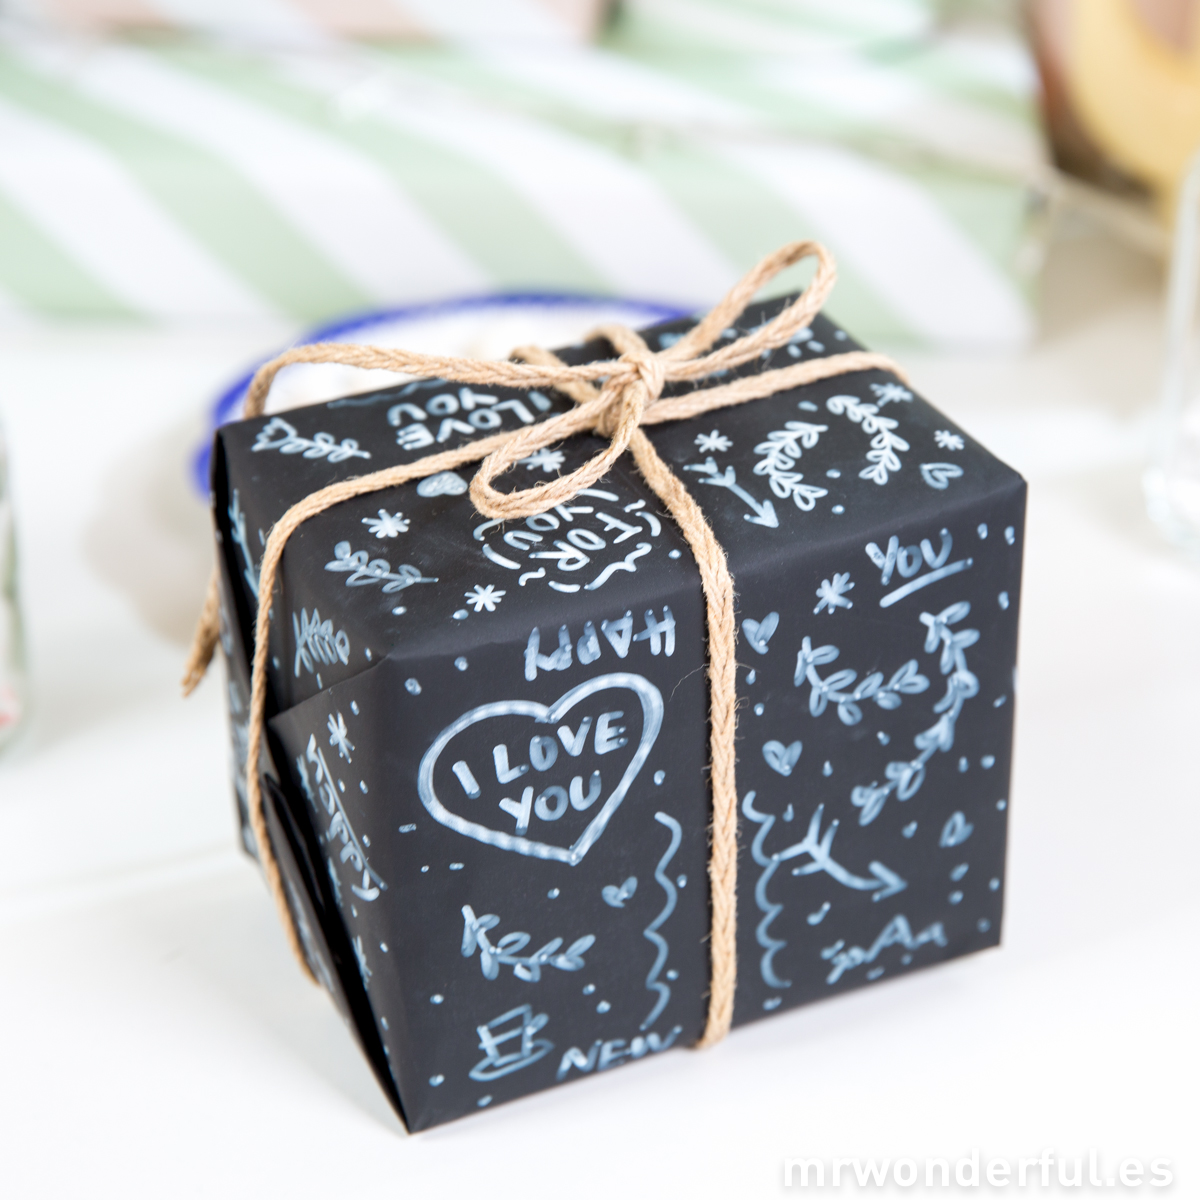 mrwonderful_WRAP-CHALK-WRAPKIT_kit-envolver-regalos-efecto-pizarra-1